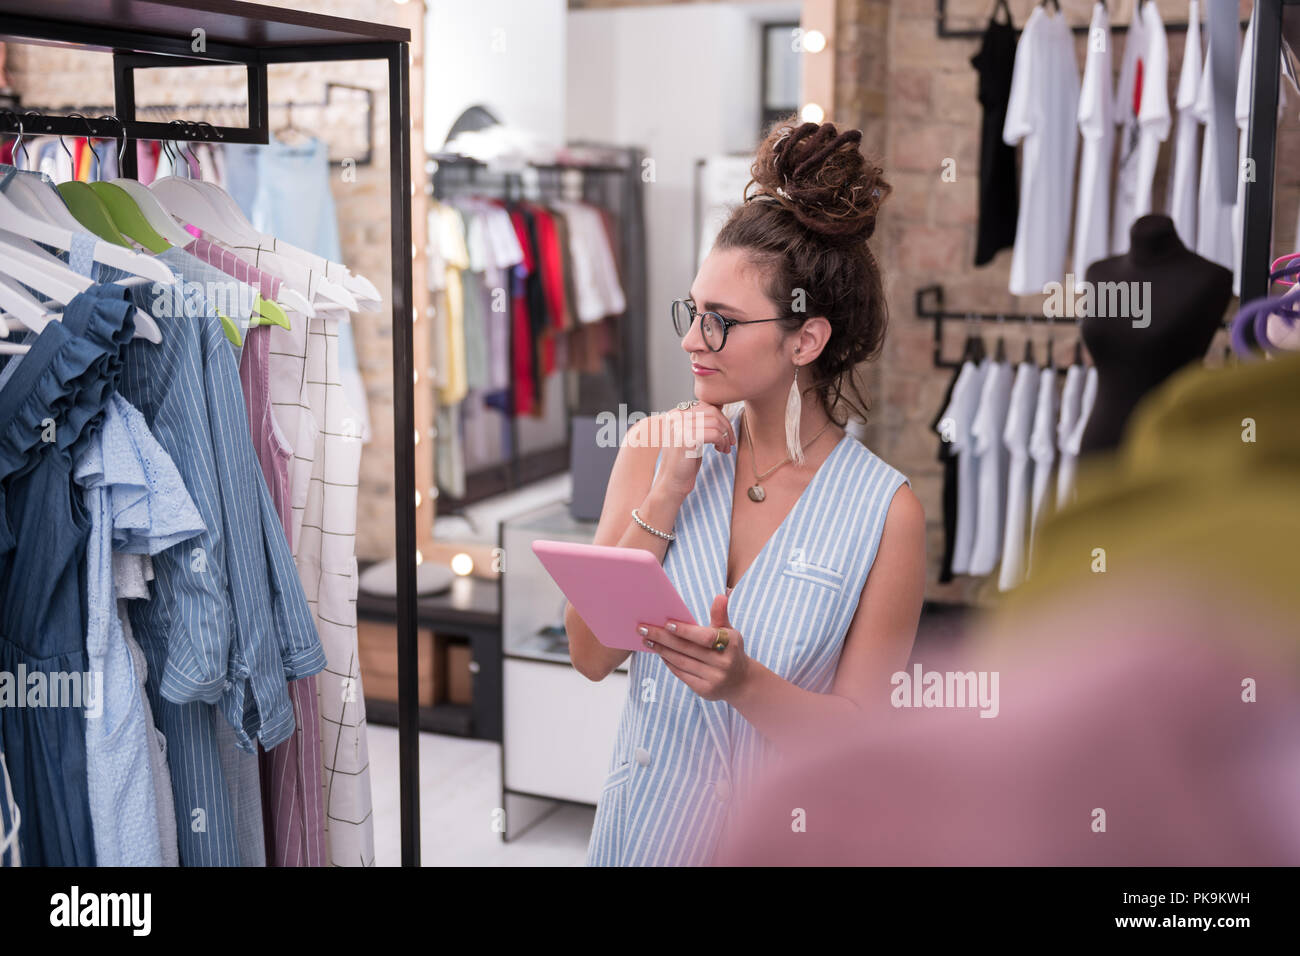 Reflective female shop assistant studying new arrivals - Stock Image